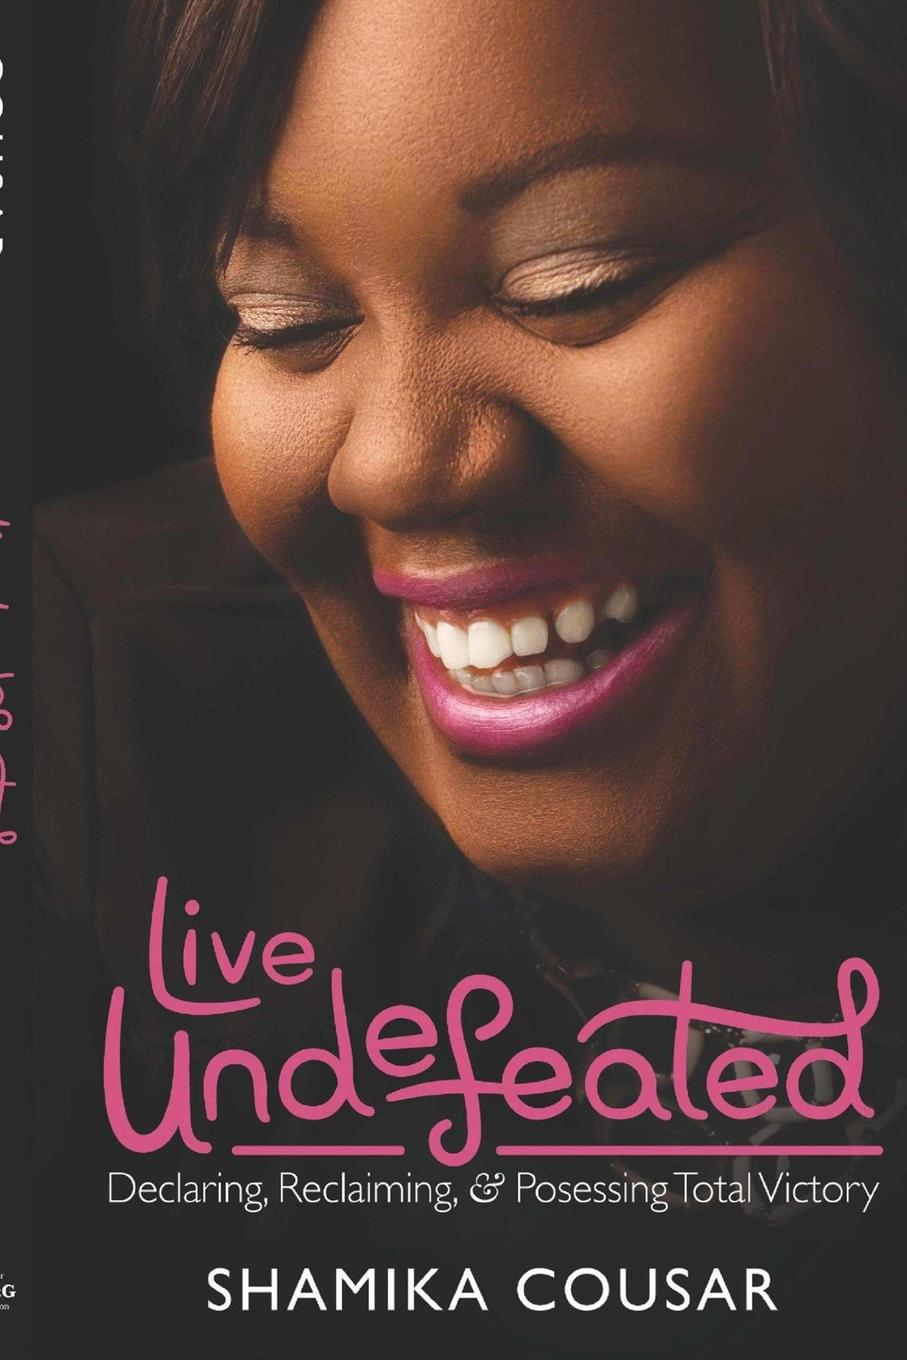 Shamika Cousar Live UNDEFEATED-2nd Edition dave thompson likelife easiest way tolive effectively